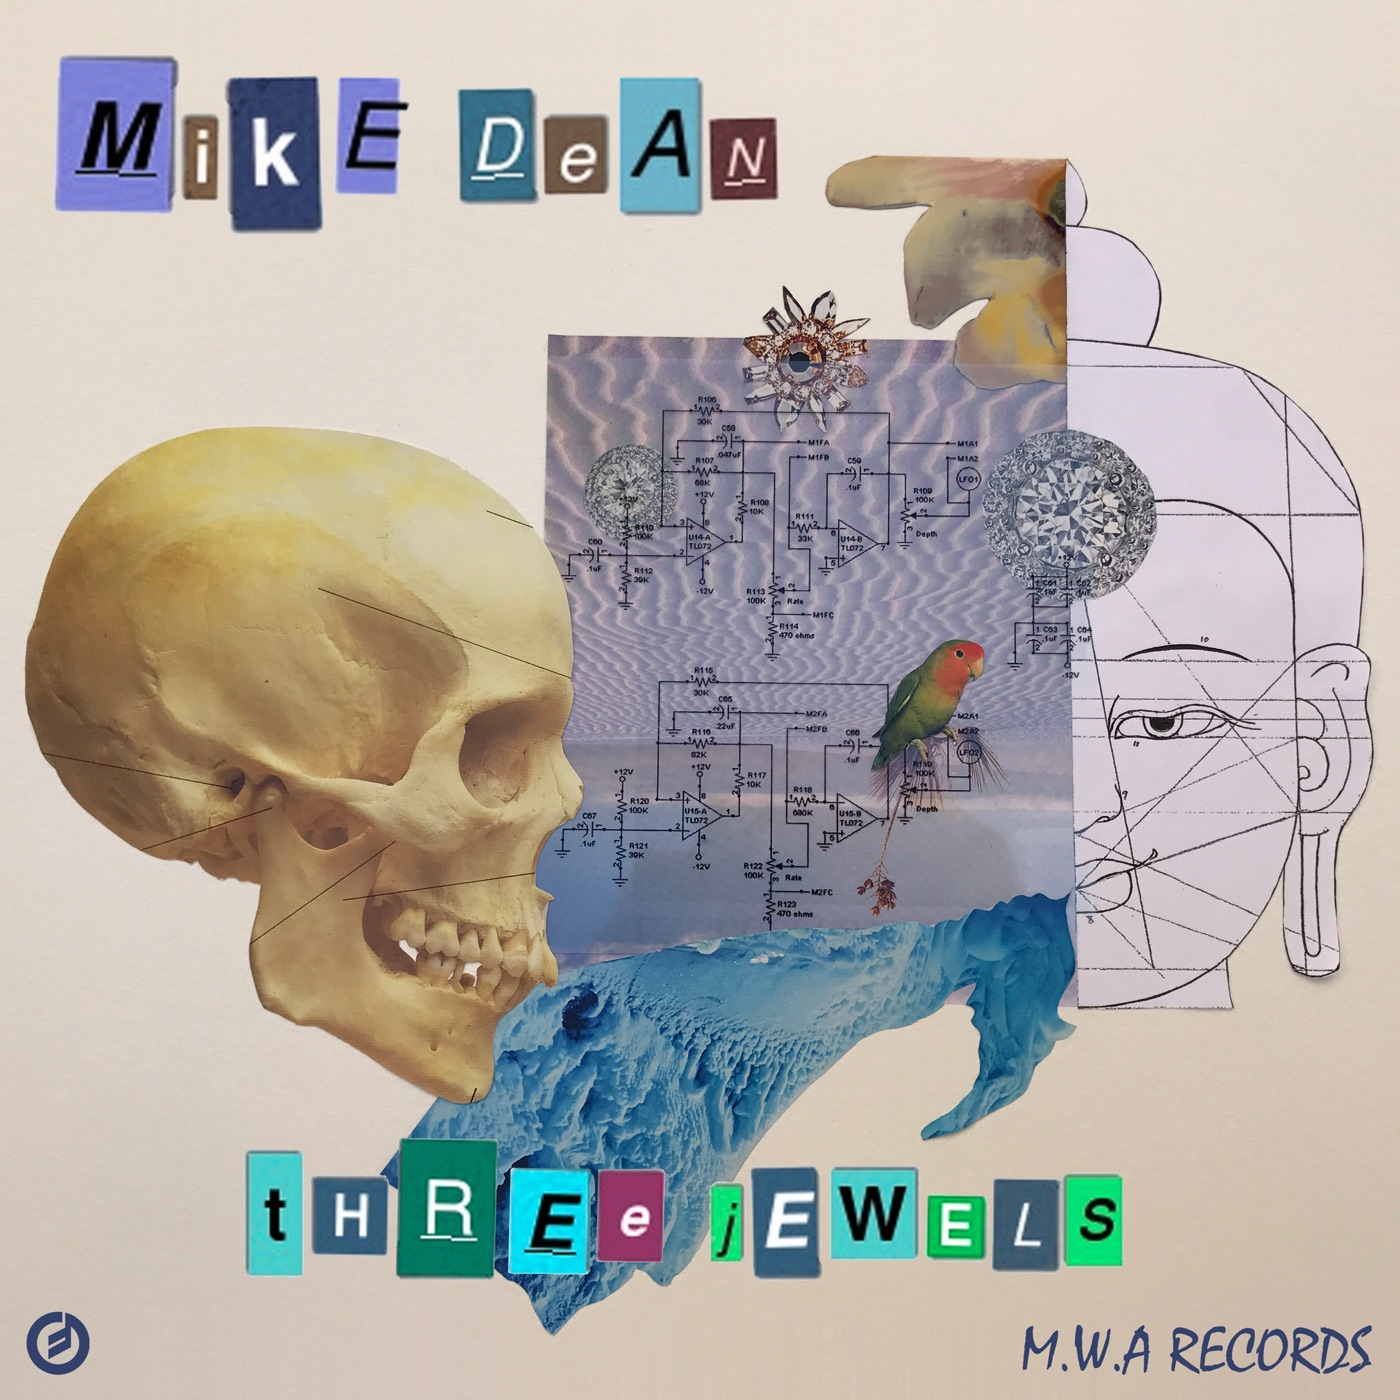 MIKE DEAN MWA - Three Jewels - Single Cover